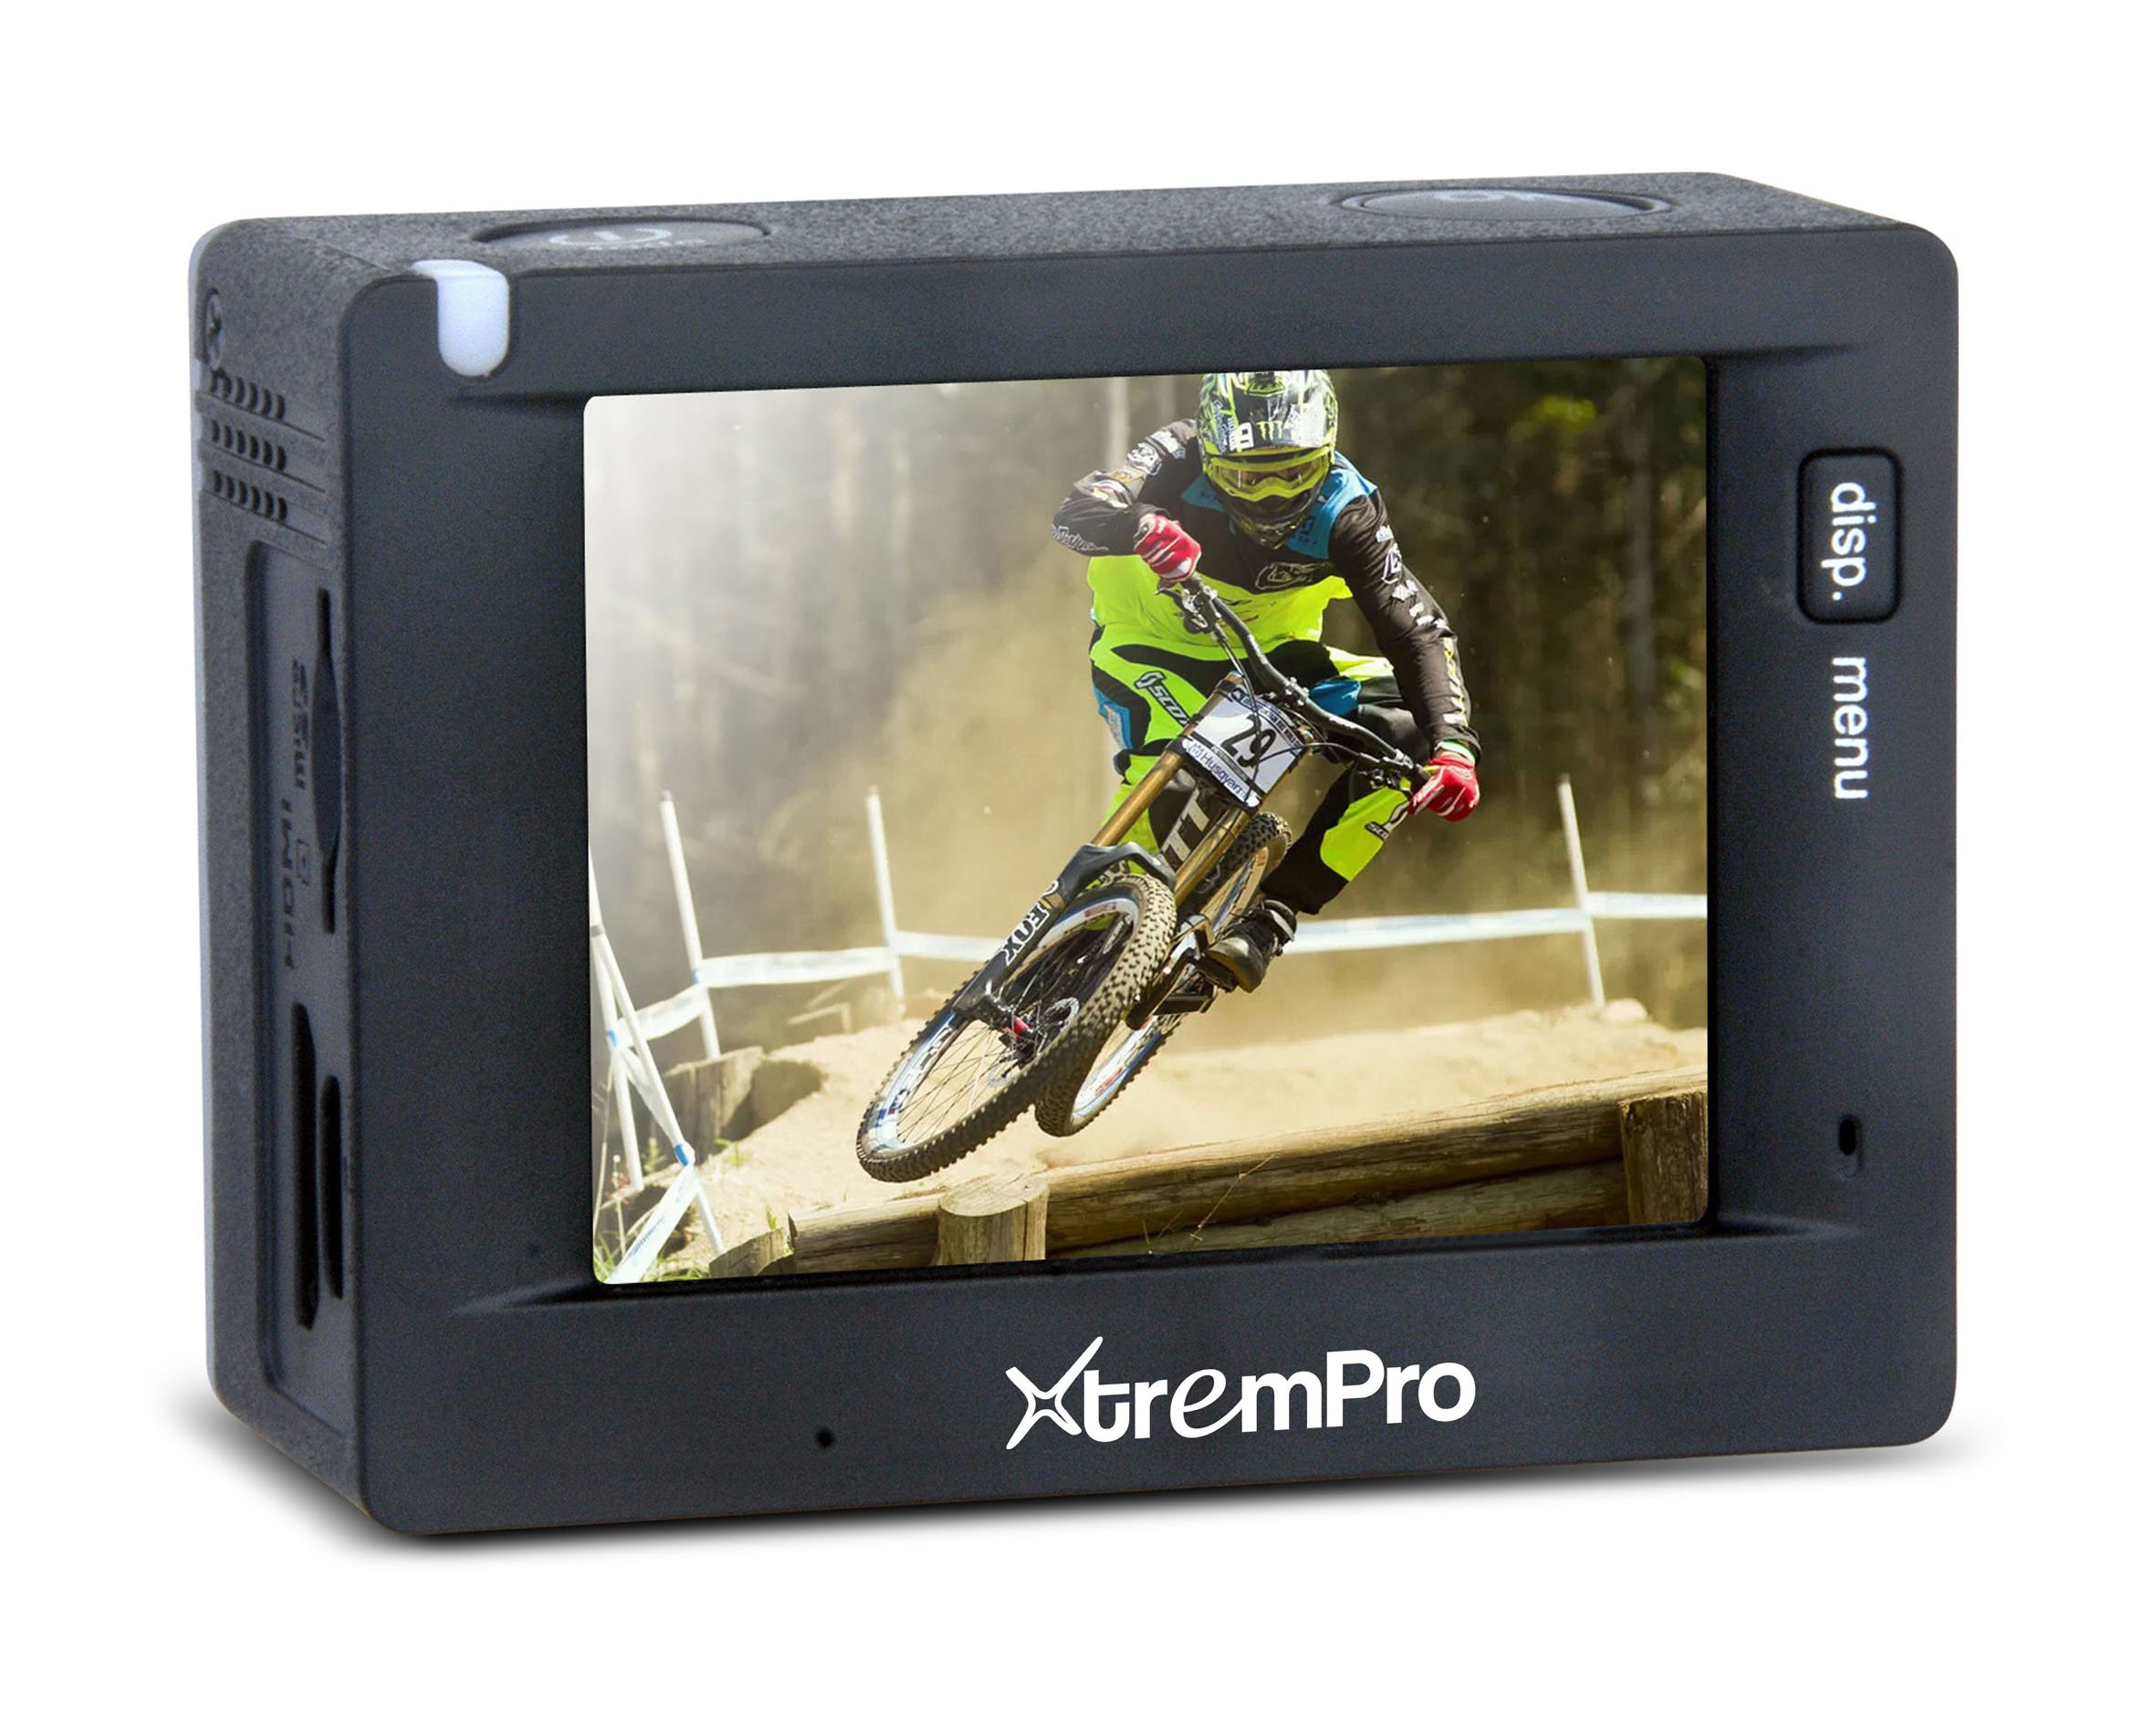 XtremPro Sports Action Video Camera Waterproof WIFI Full HD 1080P DV Camcorder 12MP MINI Digital Video w/ 2.0'' in LCD HD Plane, 130 Degree Wide, 1200mAh Battery - Black (S2) by XtremPro